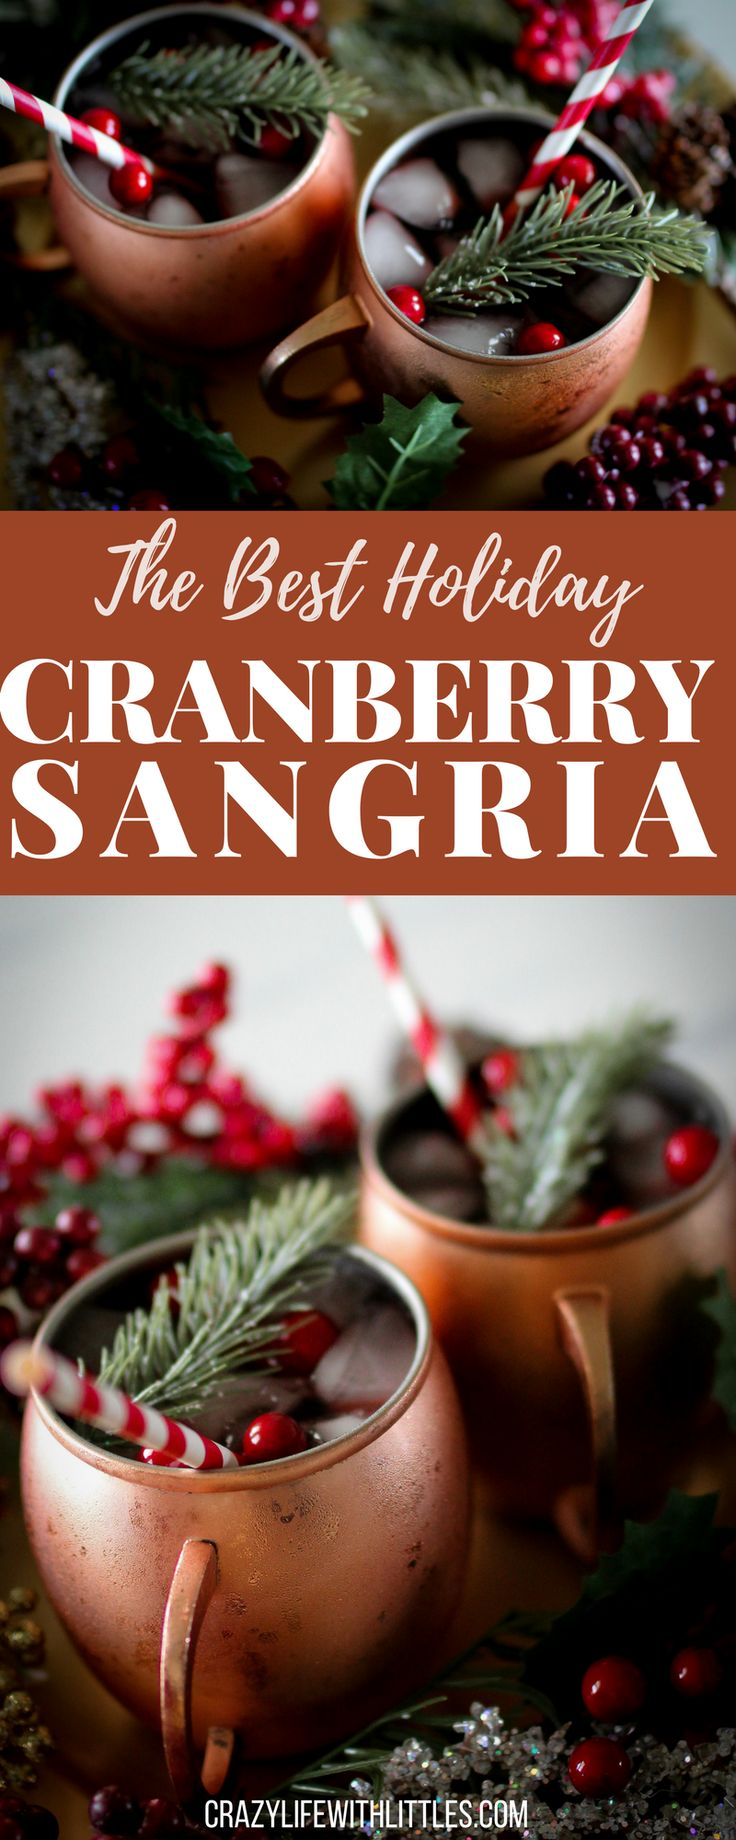 cranberry juice sangria sparkling cranberry sangria cranberry orange sangria recipe easy cranberry sangria cranberry apple sangria ocean spray cranberry sangria winter white sangria sangria with cinnamon and cloves apple cinnamon sangria with fireball sangria with cinnamon sticks red christmas sangria easy winter sangria winter sangria cranberry thanksgiving sangria